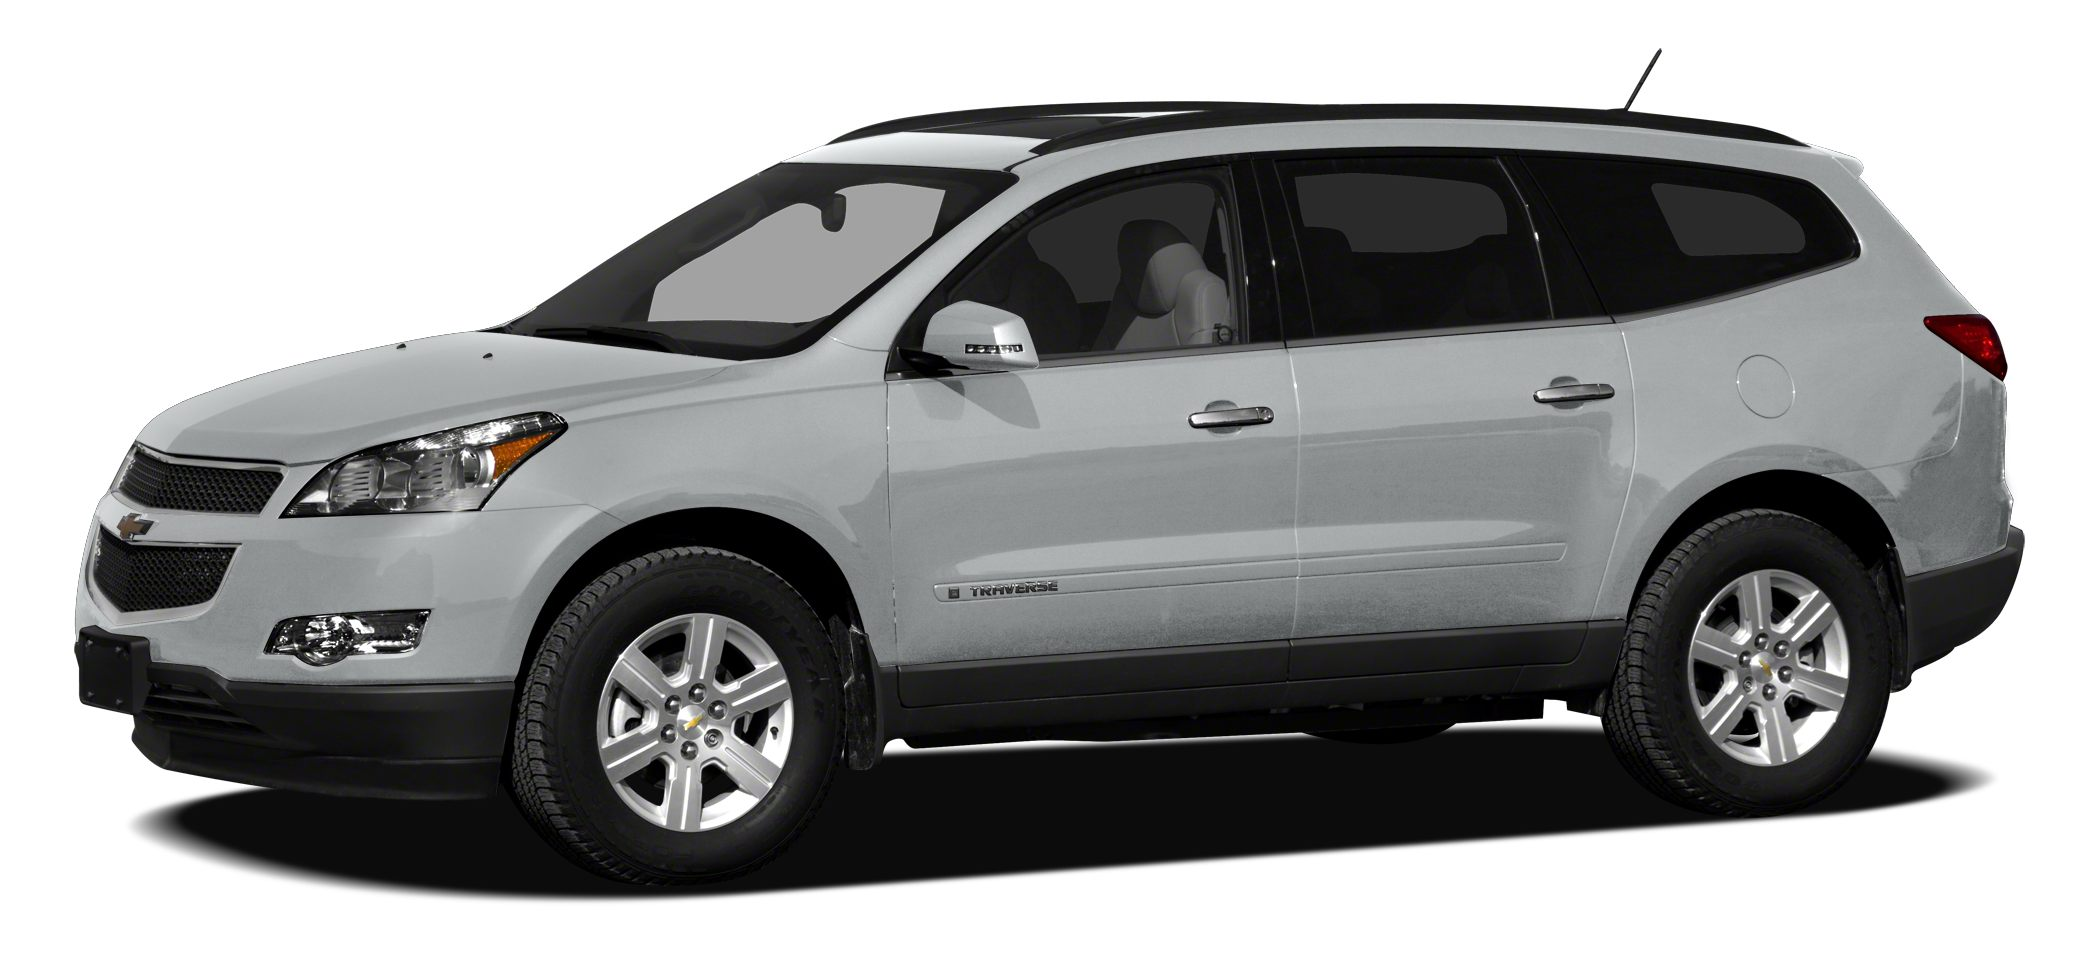 2012 Chevrolet Traverse 1LT Set down the mouse because this 2012 Chevrolet Traverse is the SUV you